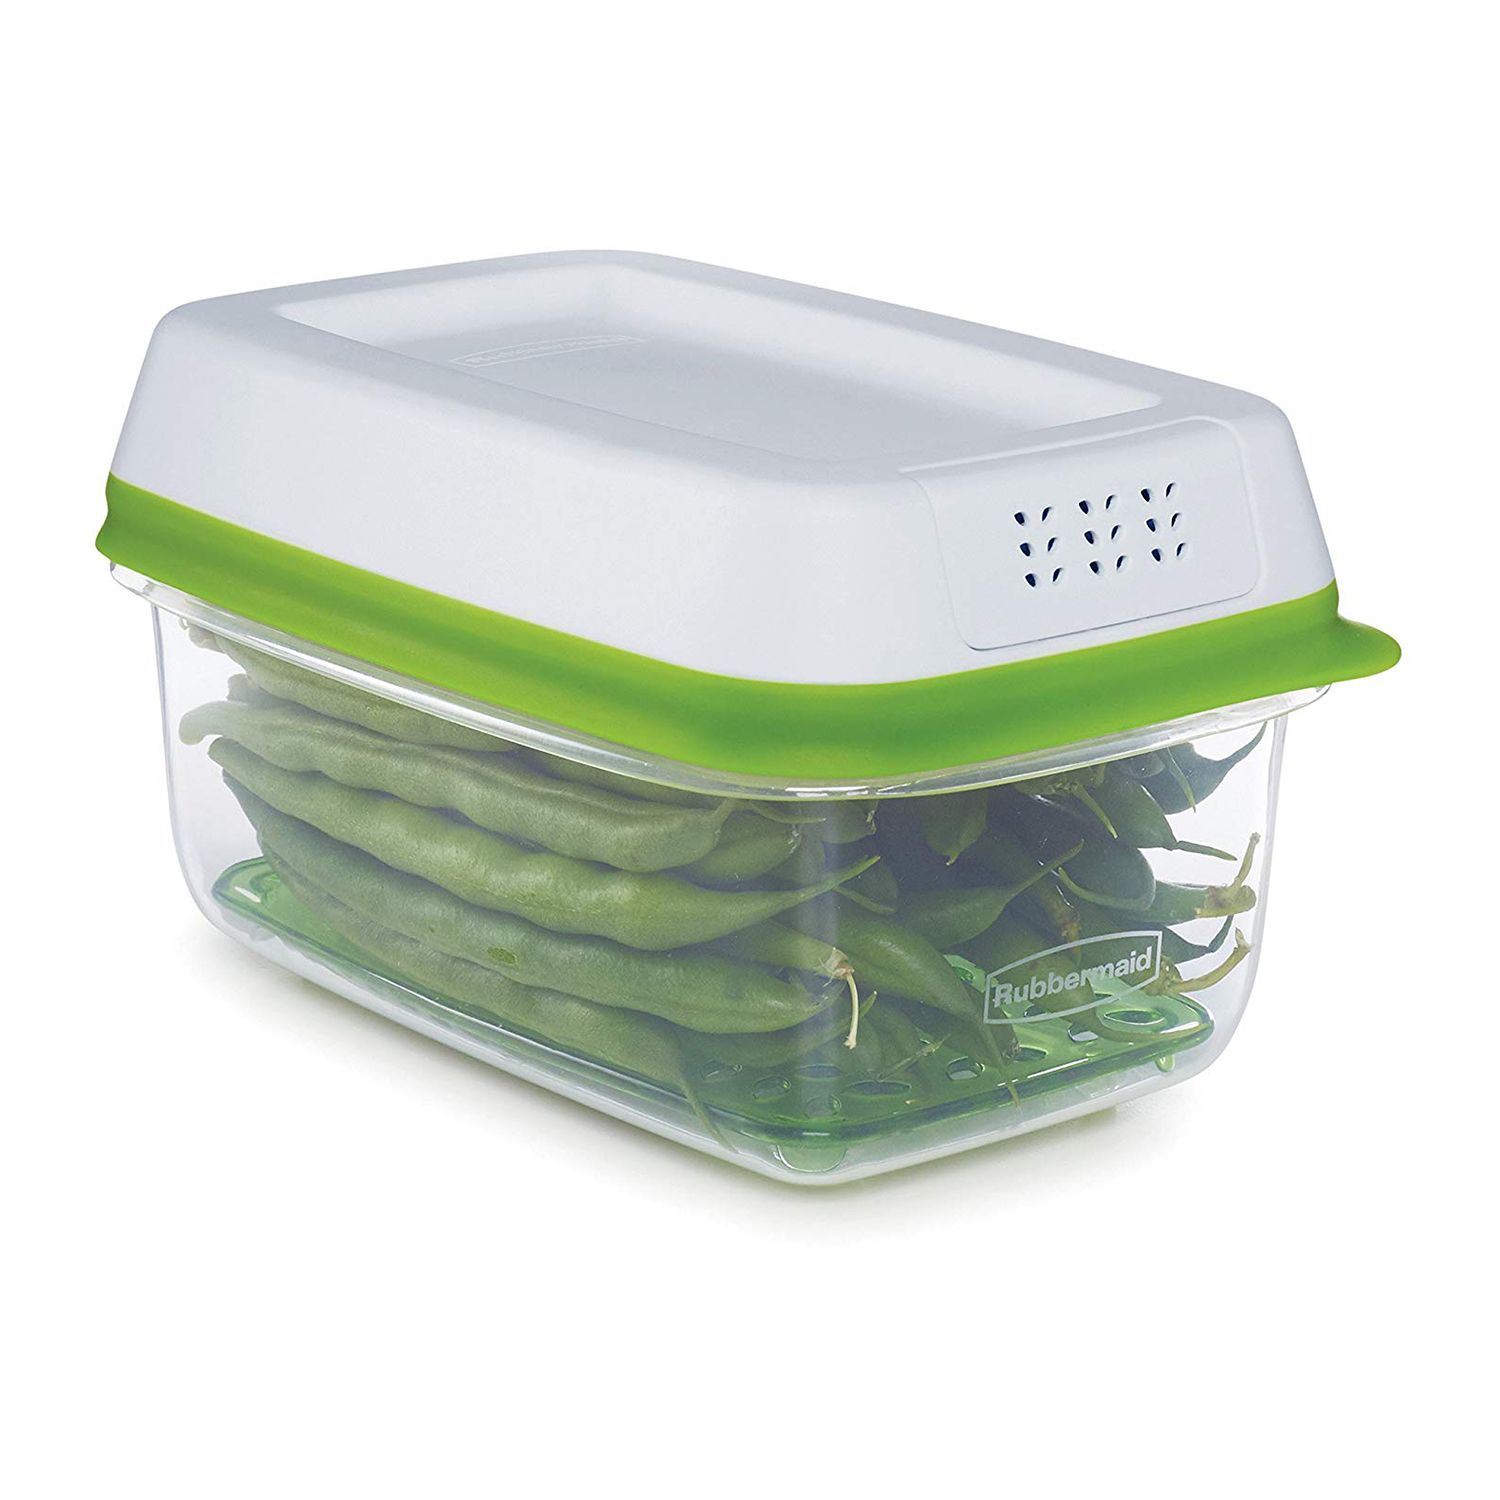 We Tried The Containers That Keep Your Produce Fresh For Weeks And